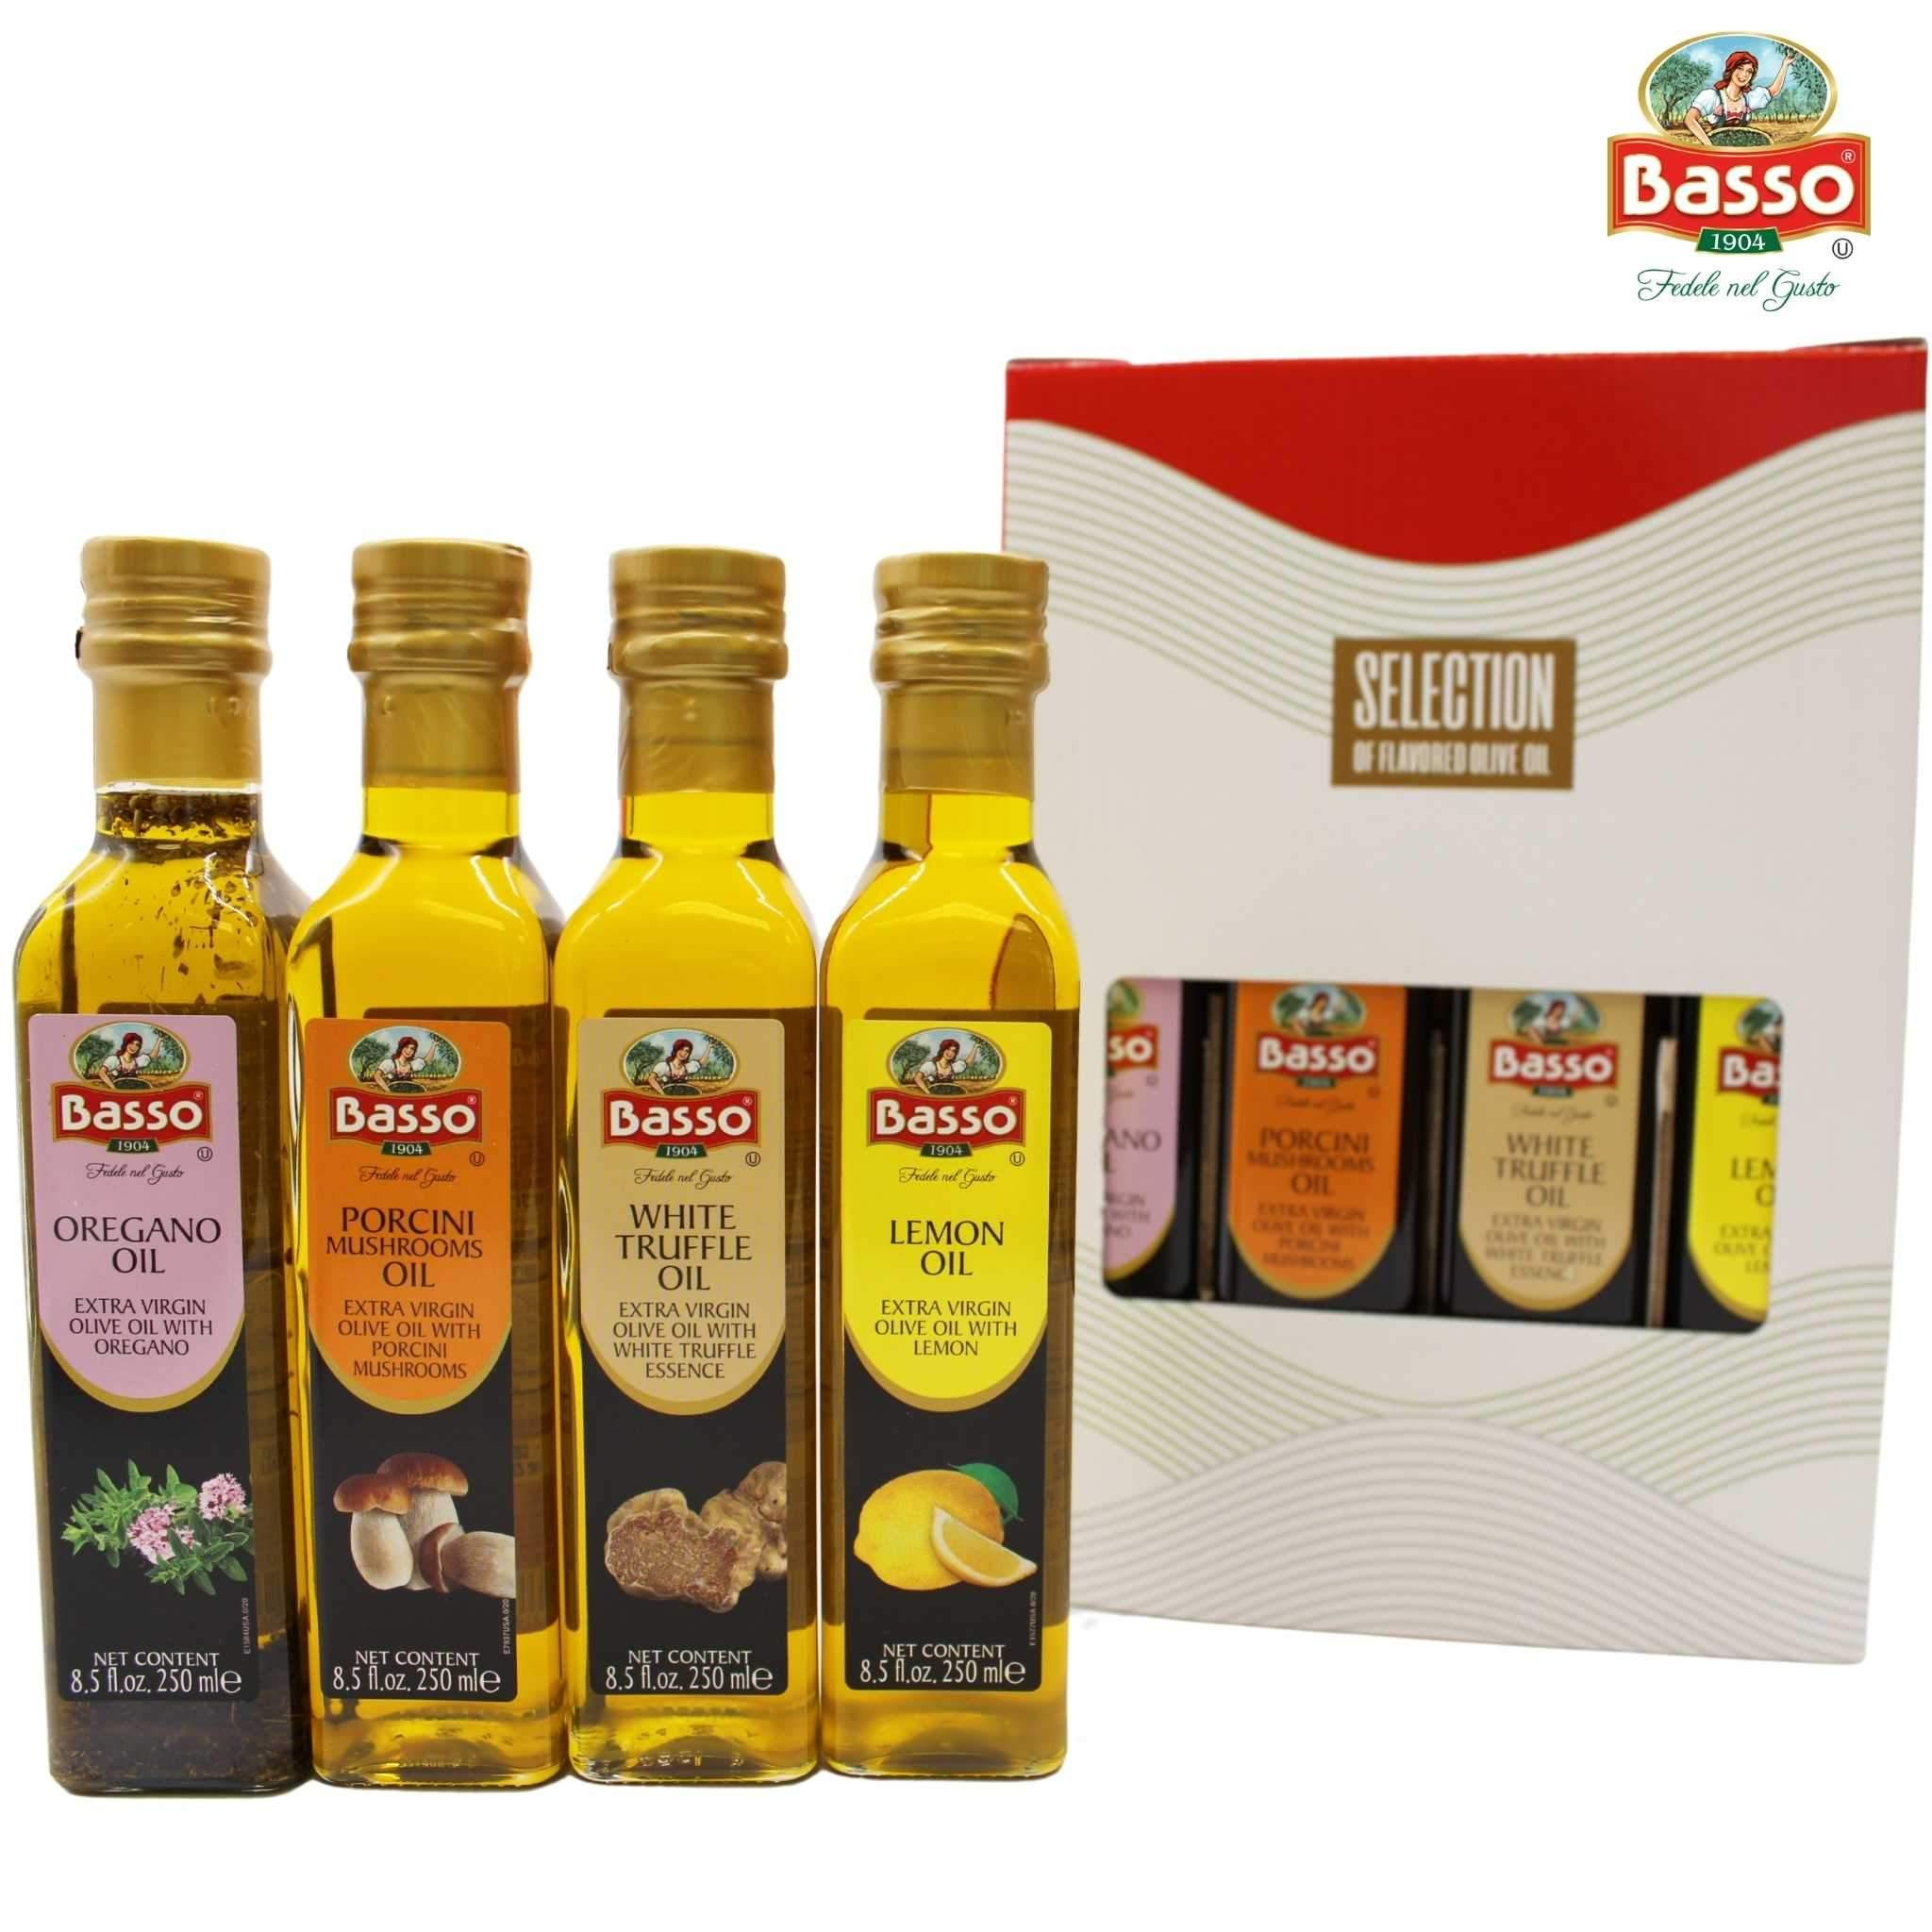 Basso Extra Virgin Olive Oil 4 Pack 8.5 fl oz Oregano Lemon Porcini White Truffle